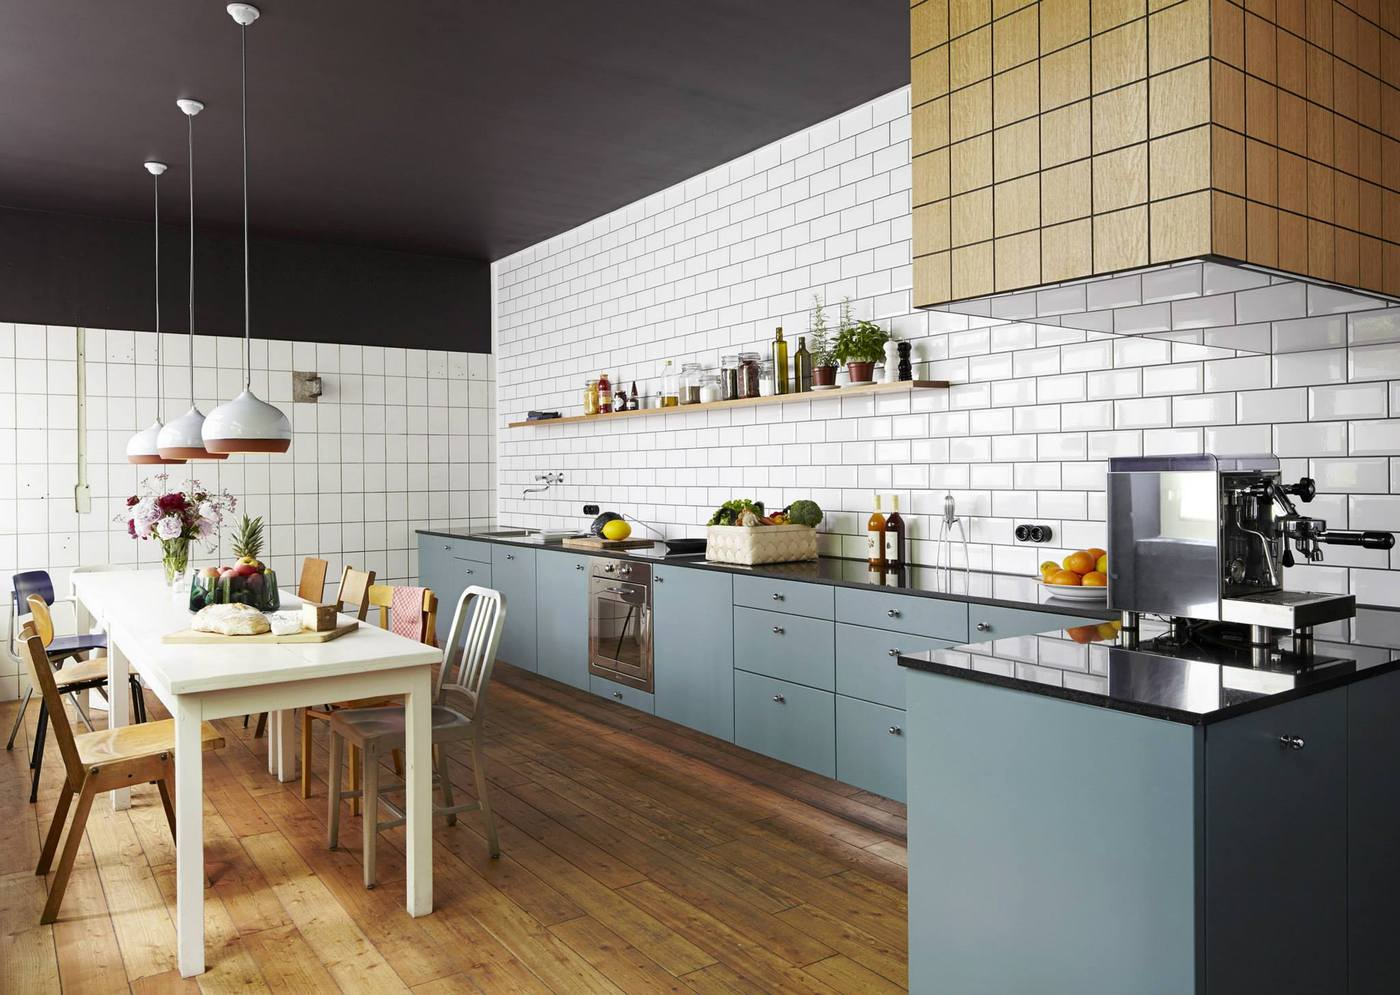 tiles in kitchen design white subway tile kitchen designs are incredibly universal 6228